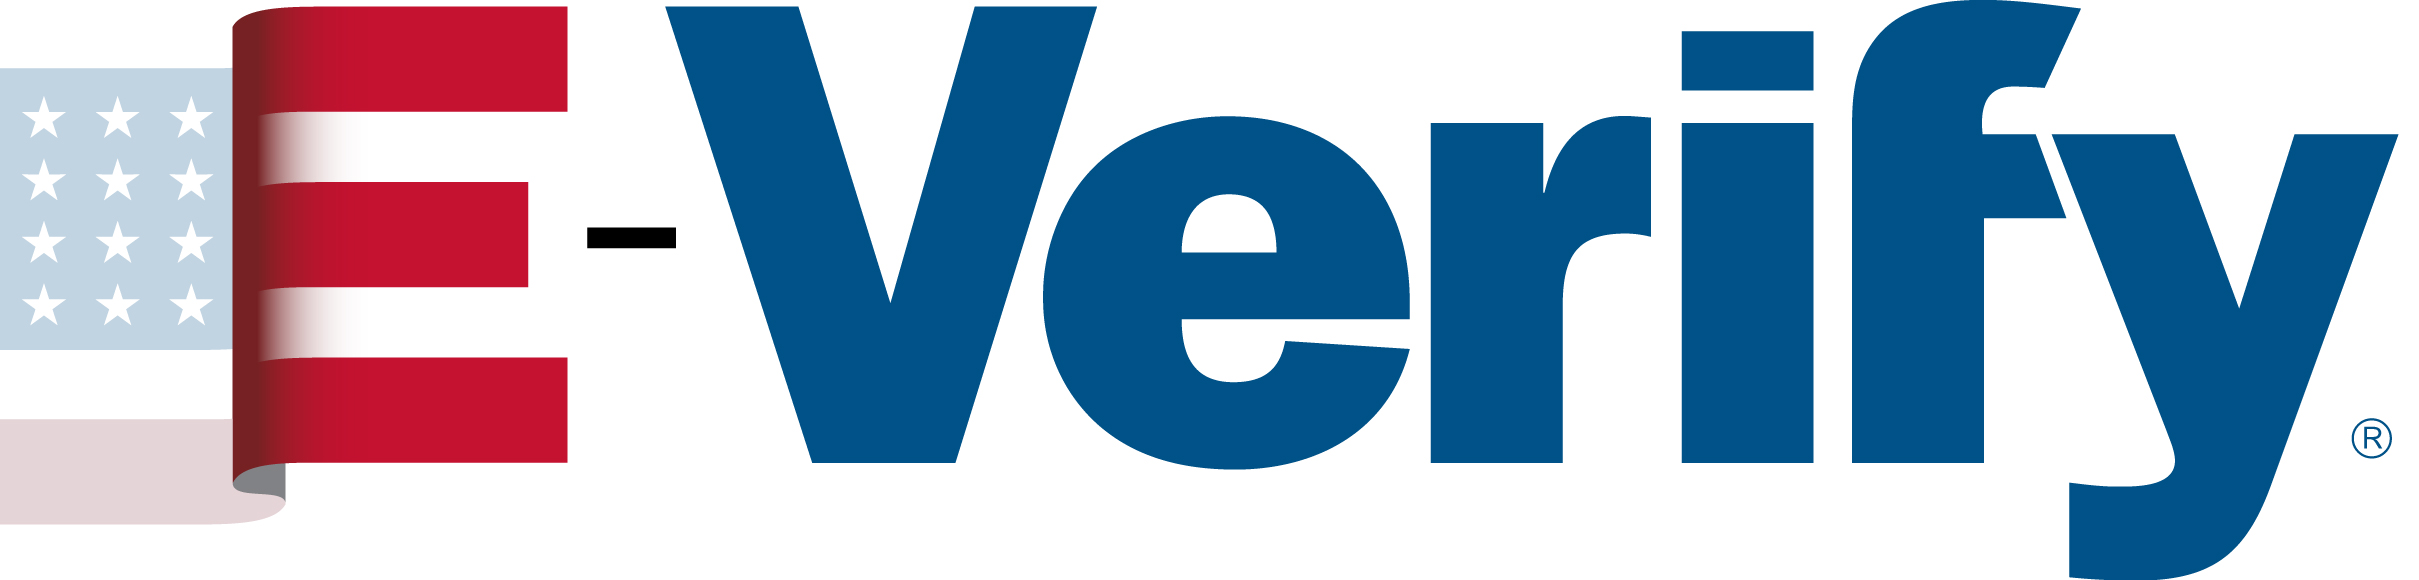 E-Verify_Logo_4-Color_RGB_LG_JPG.jpg